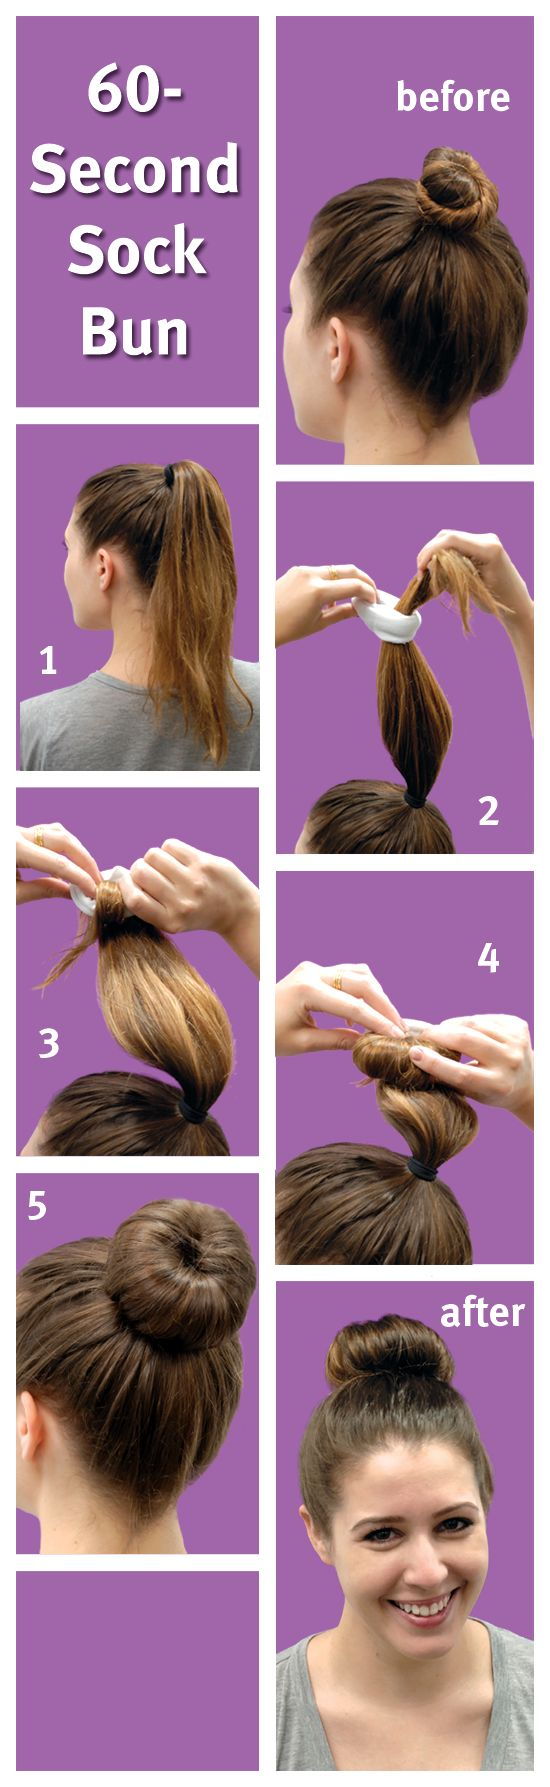 60-Second Sock Bun  awesome trick!